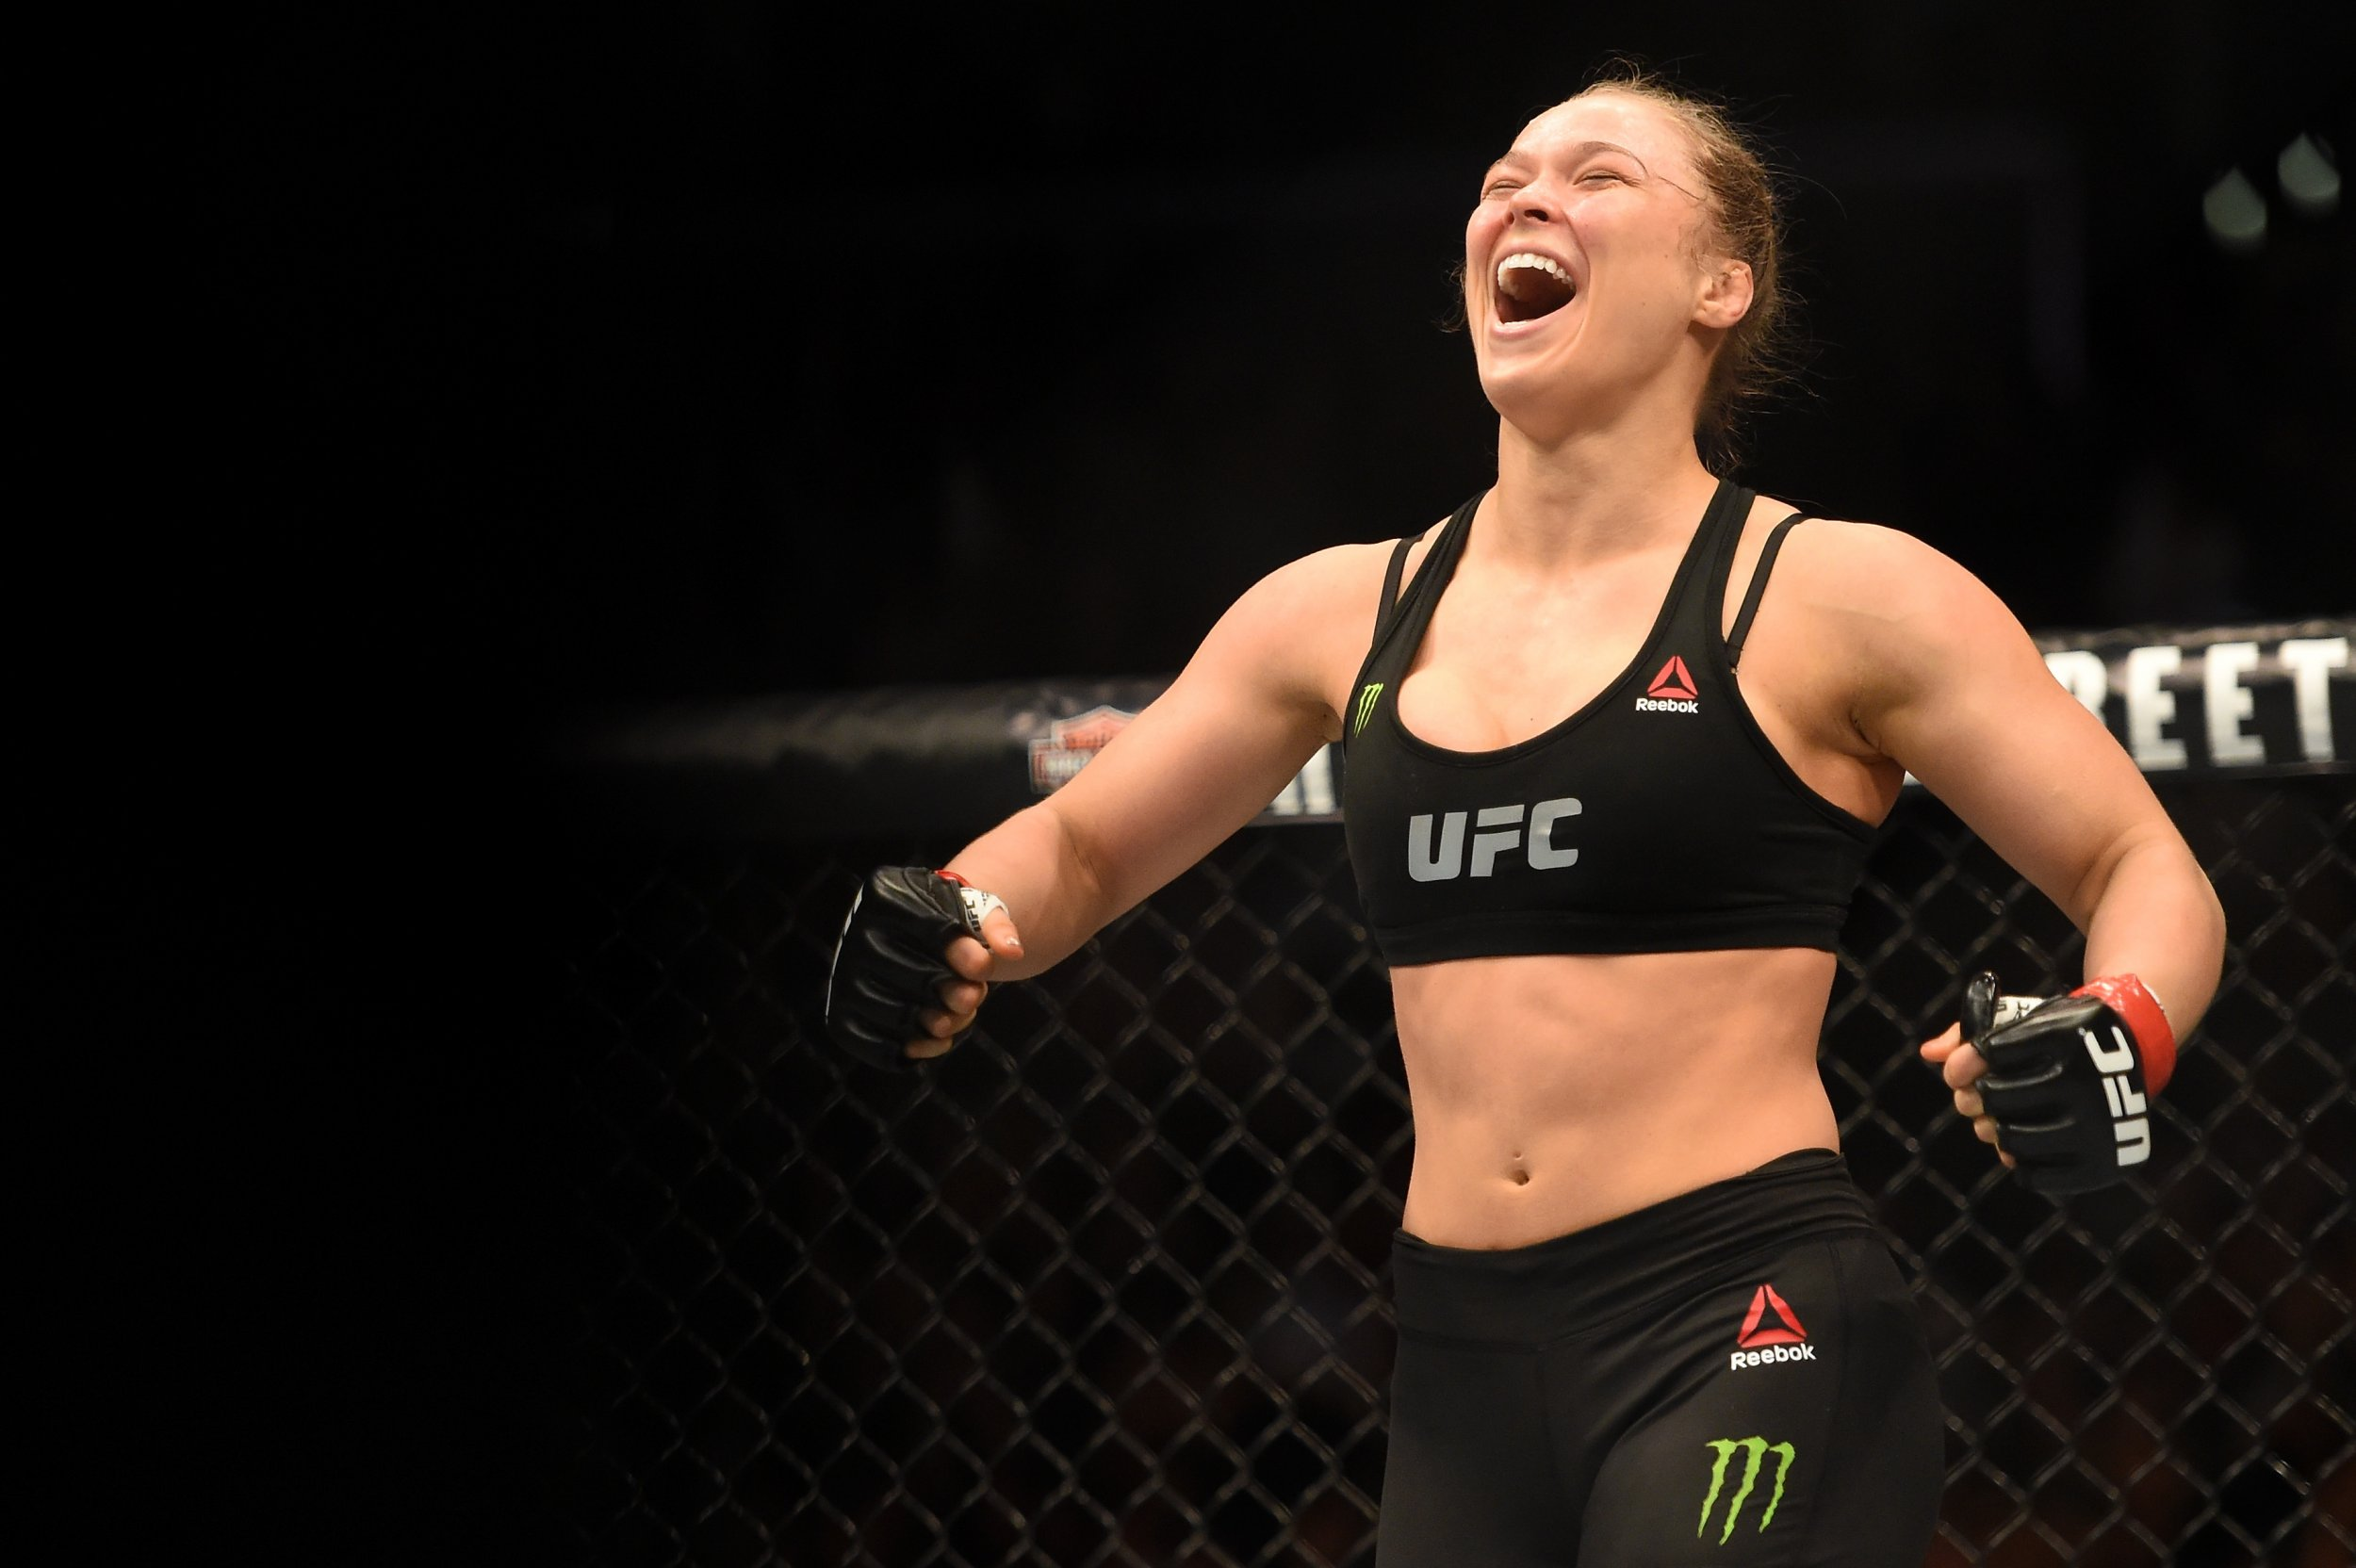 Ronda Rousey has not fought in UFC since her knockout by Holly Holm in November.